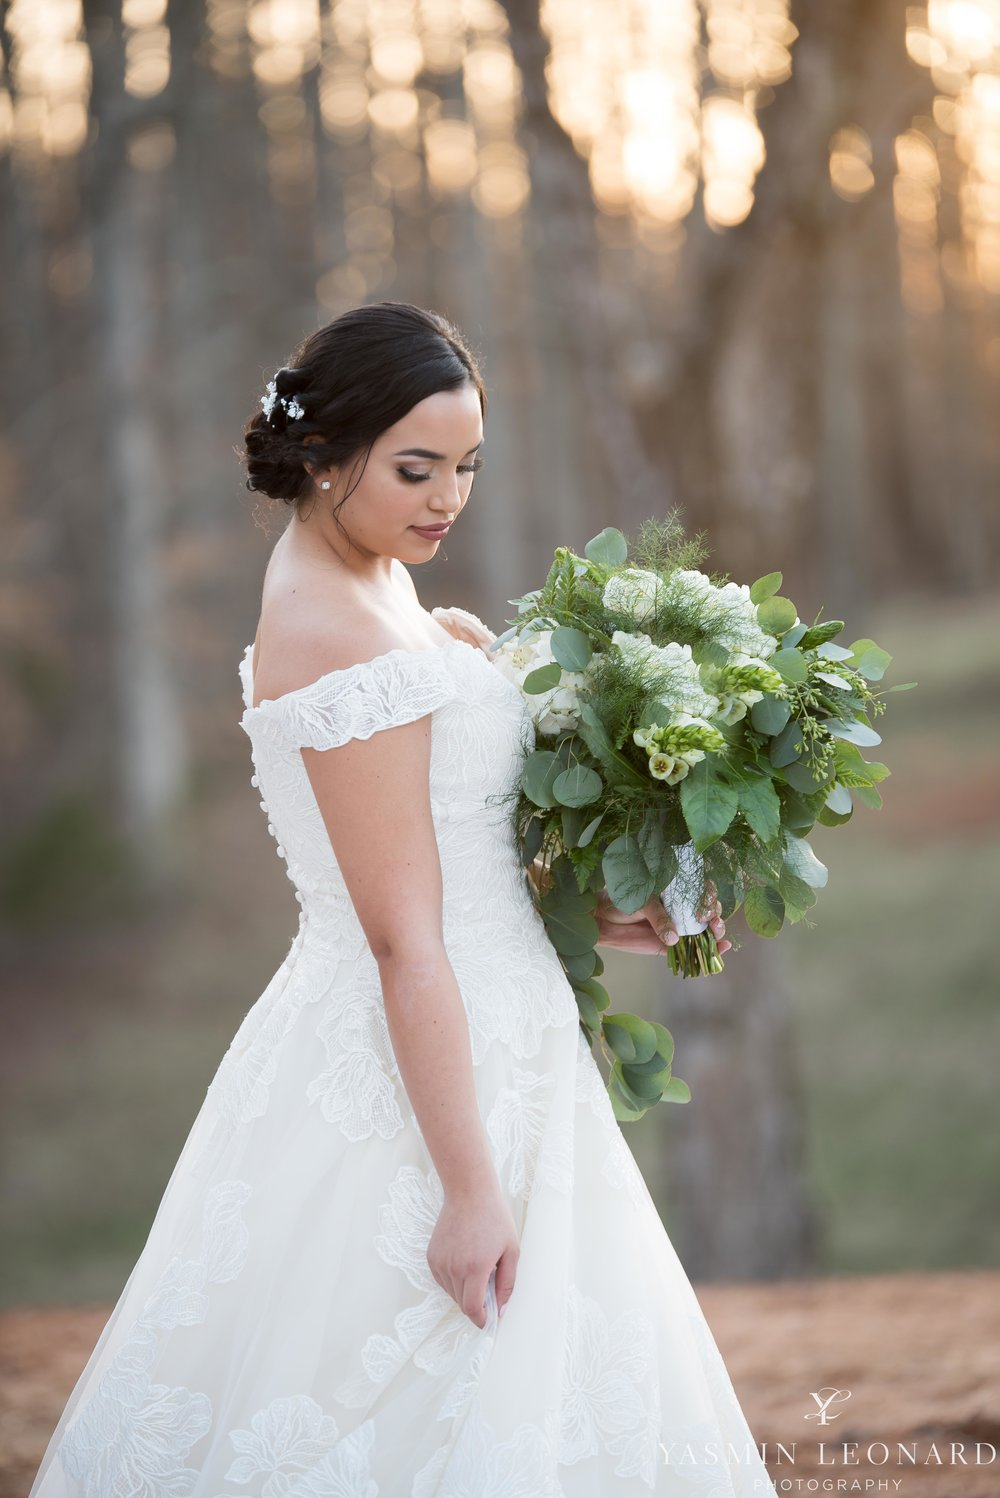 Old Homeplace Vineyard - Grits and Glitter - Dashing Dames Bridal Boutique - Just Priceless - Yasmin Leonard Photography - High Point Weddings - NC Weddings - NC Wedding Venues - High Point Jewelers - NC Wines - NC Vineyards - Cupcake Cuties-108.jpg